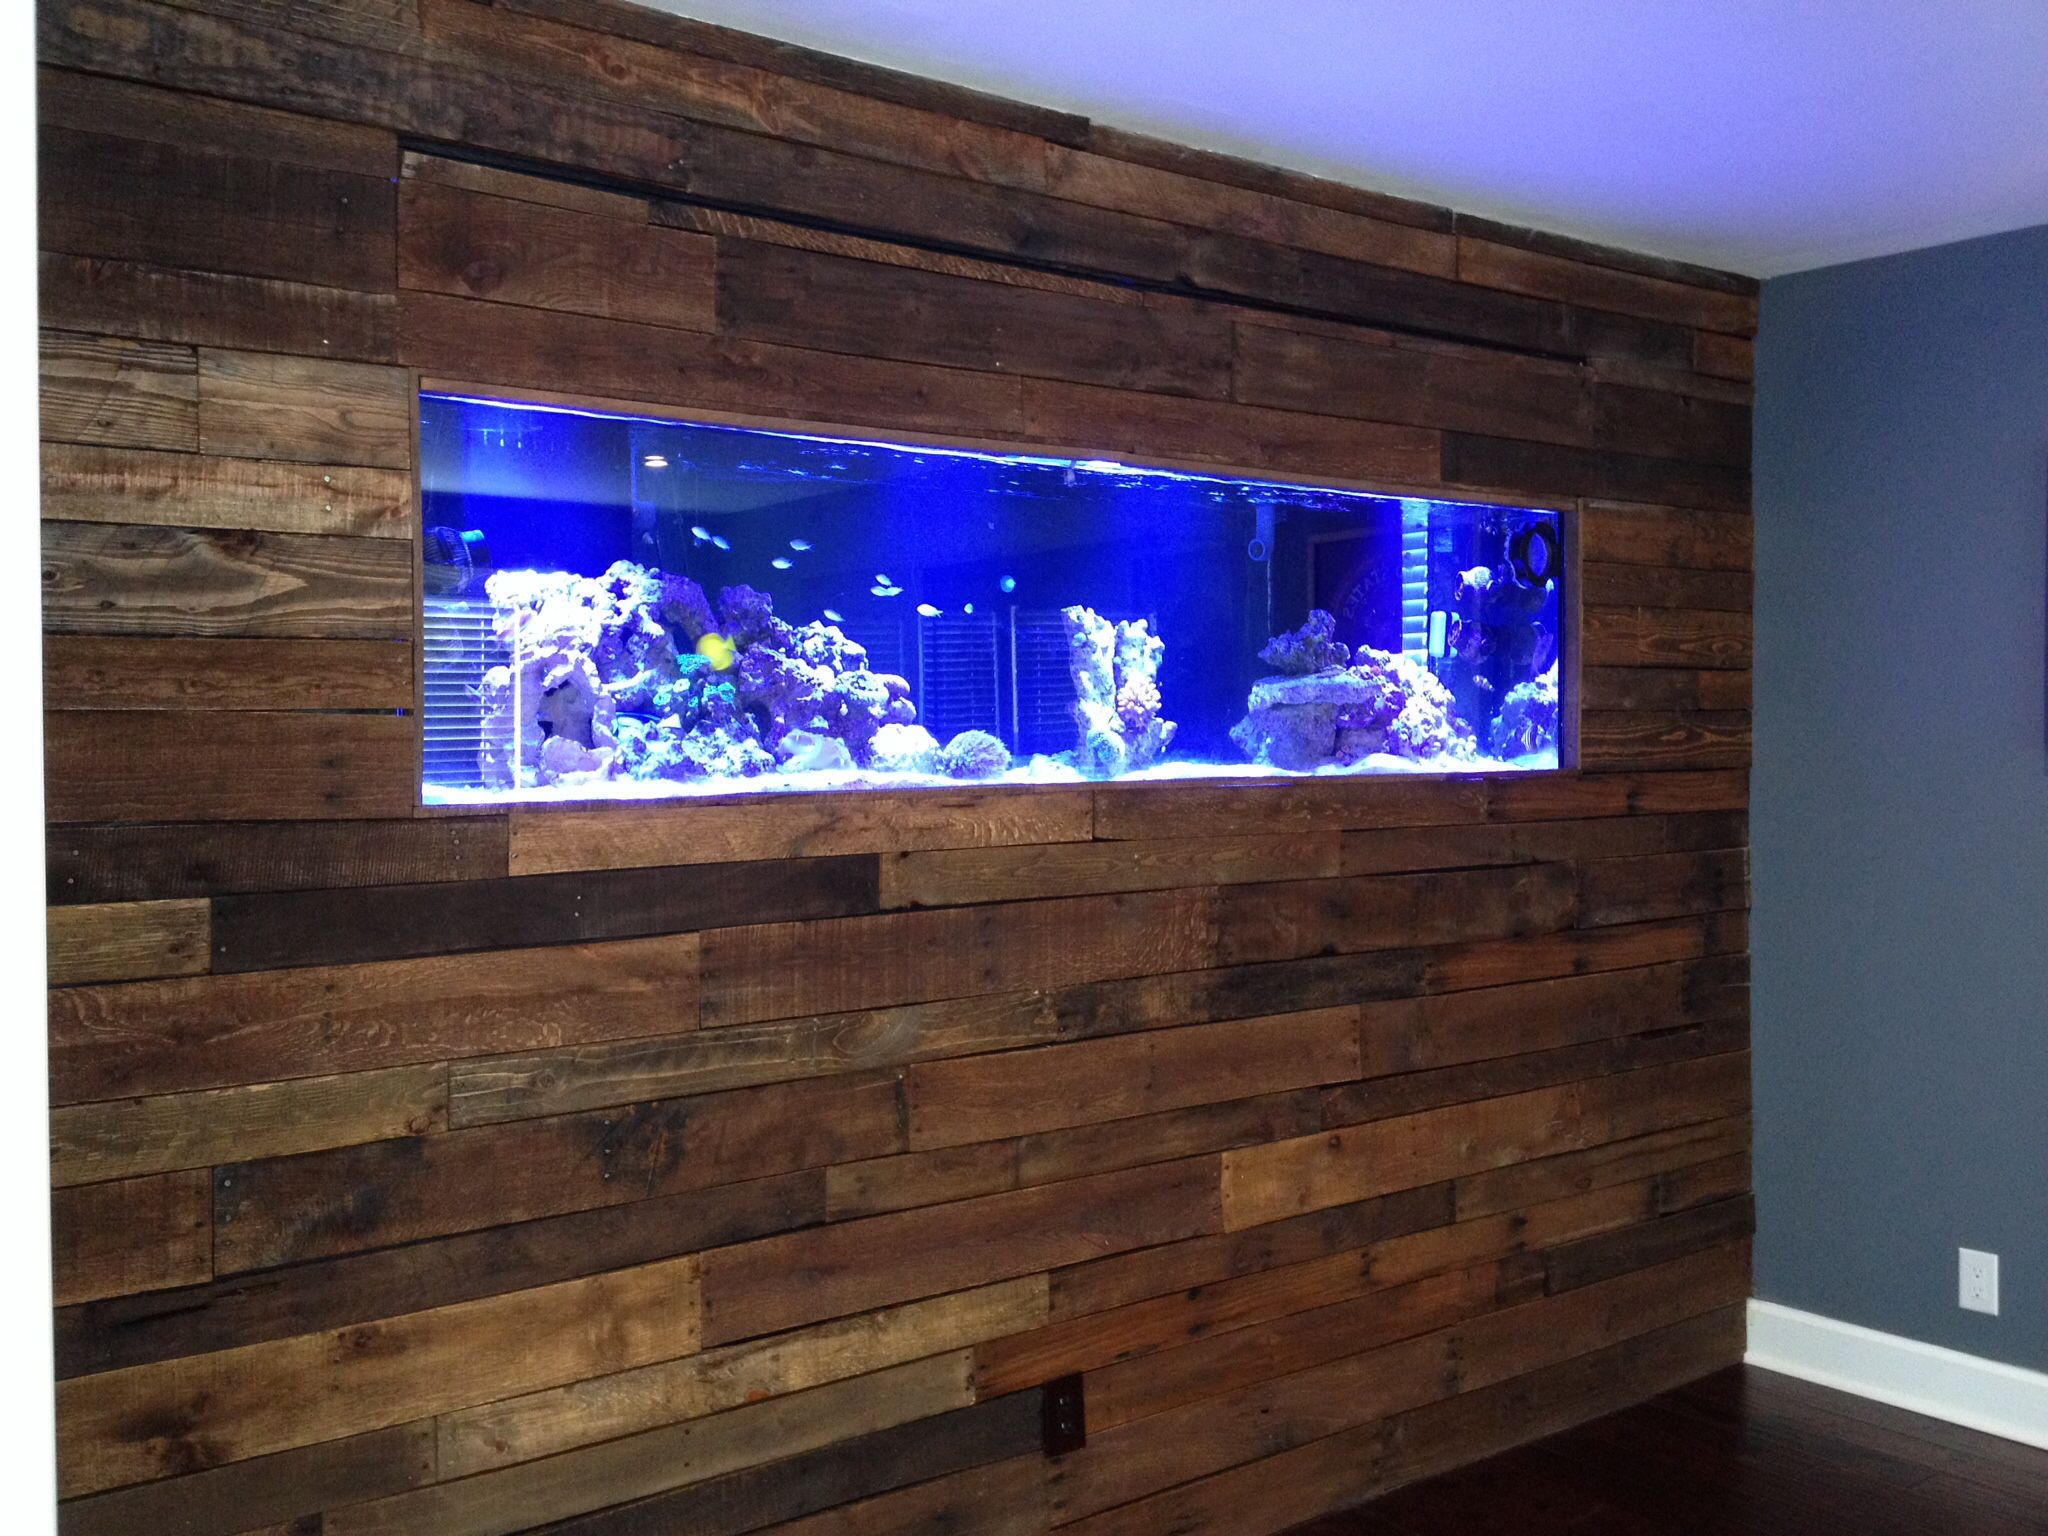 Cool Aquariums For Sale Top 10 Diy Aquarium Ideas For Your Next Aquarium Project Diy